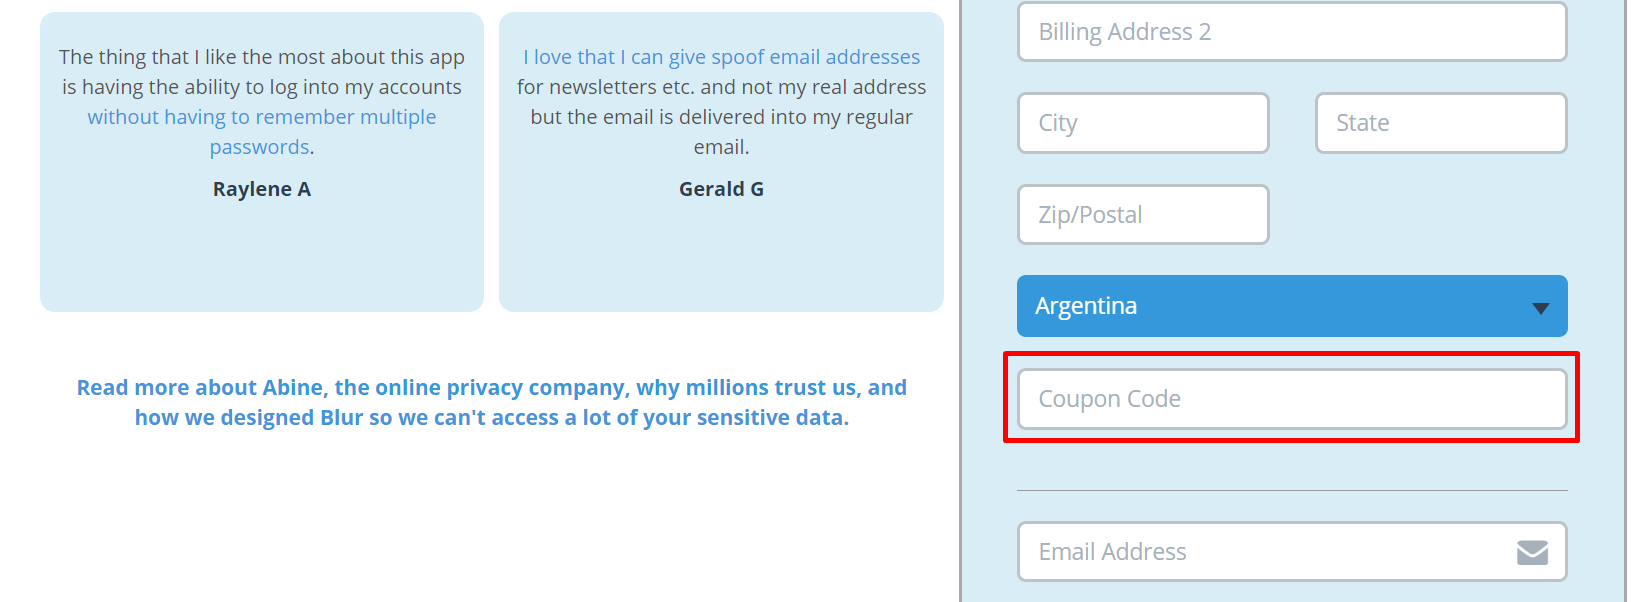 How do I use my Abine coupon code?